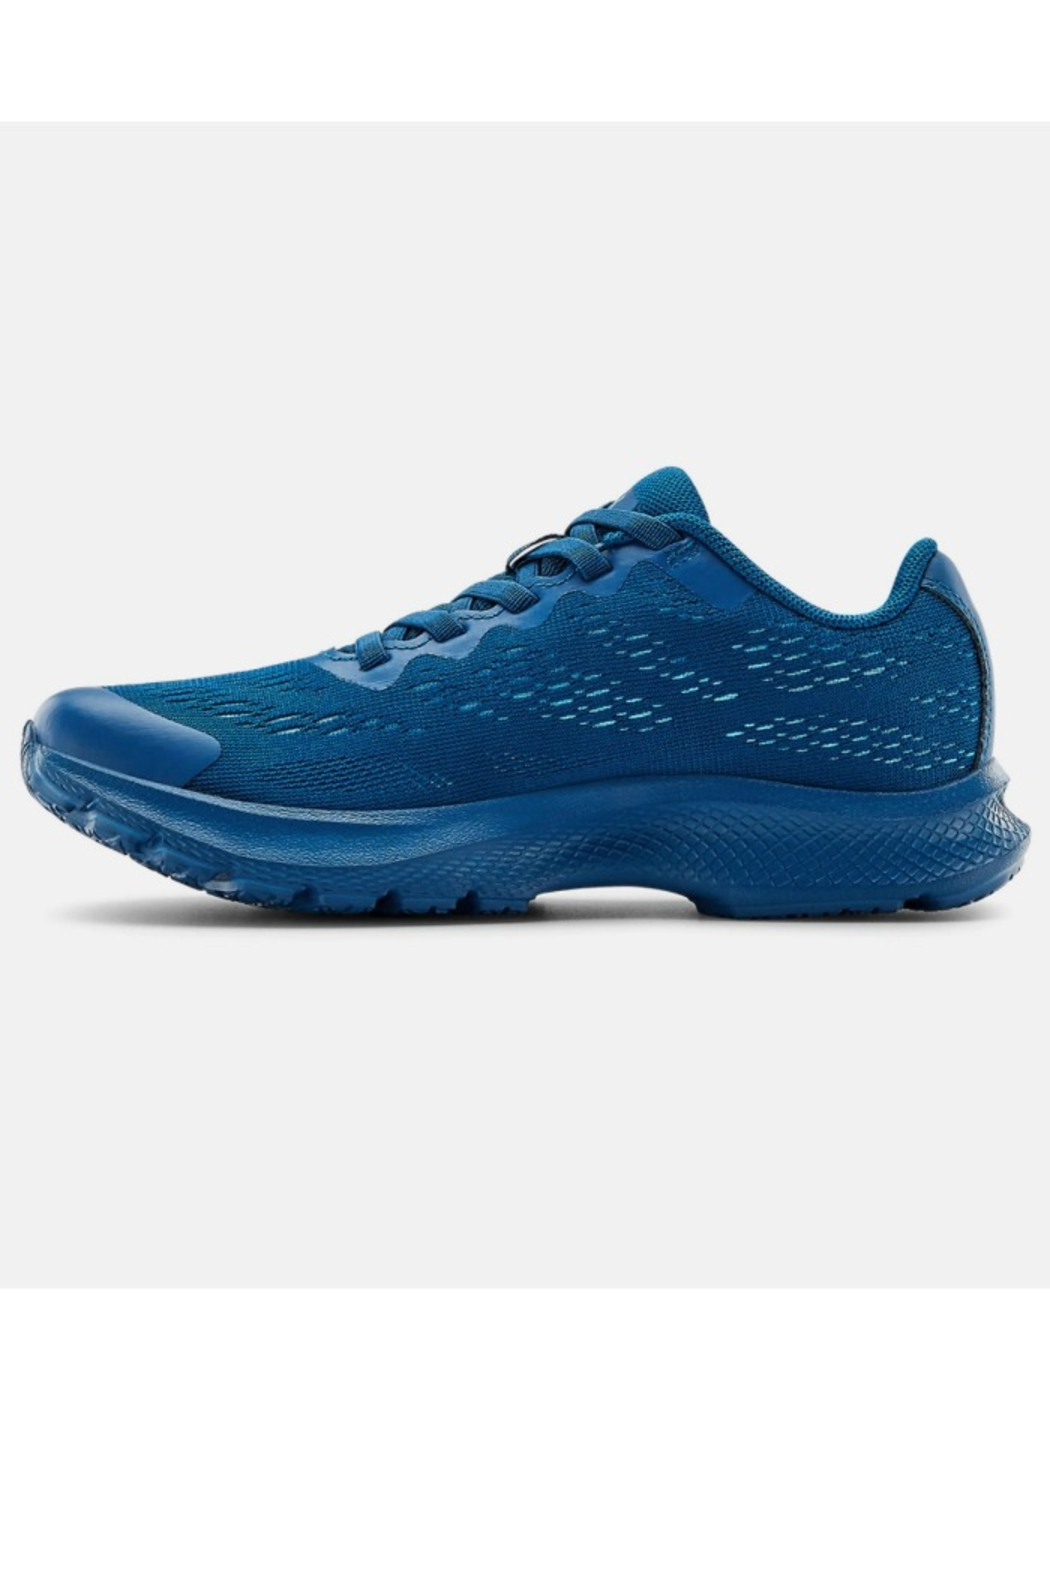 Under Armour Boys' Pre-School UA Bandit 6 Running Shoes - Front Full Image